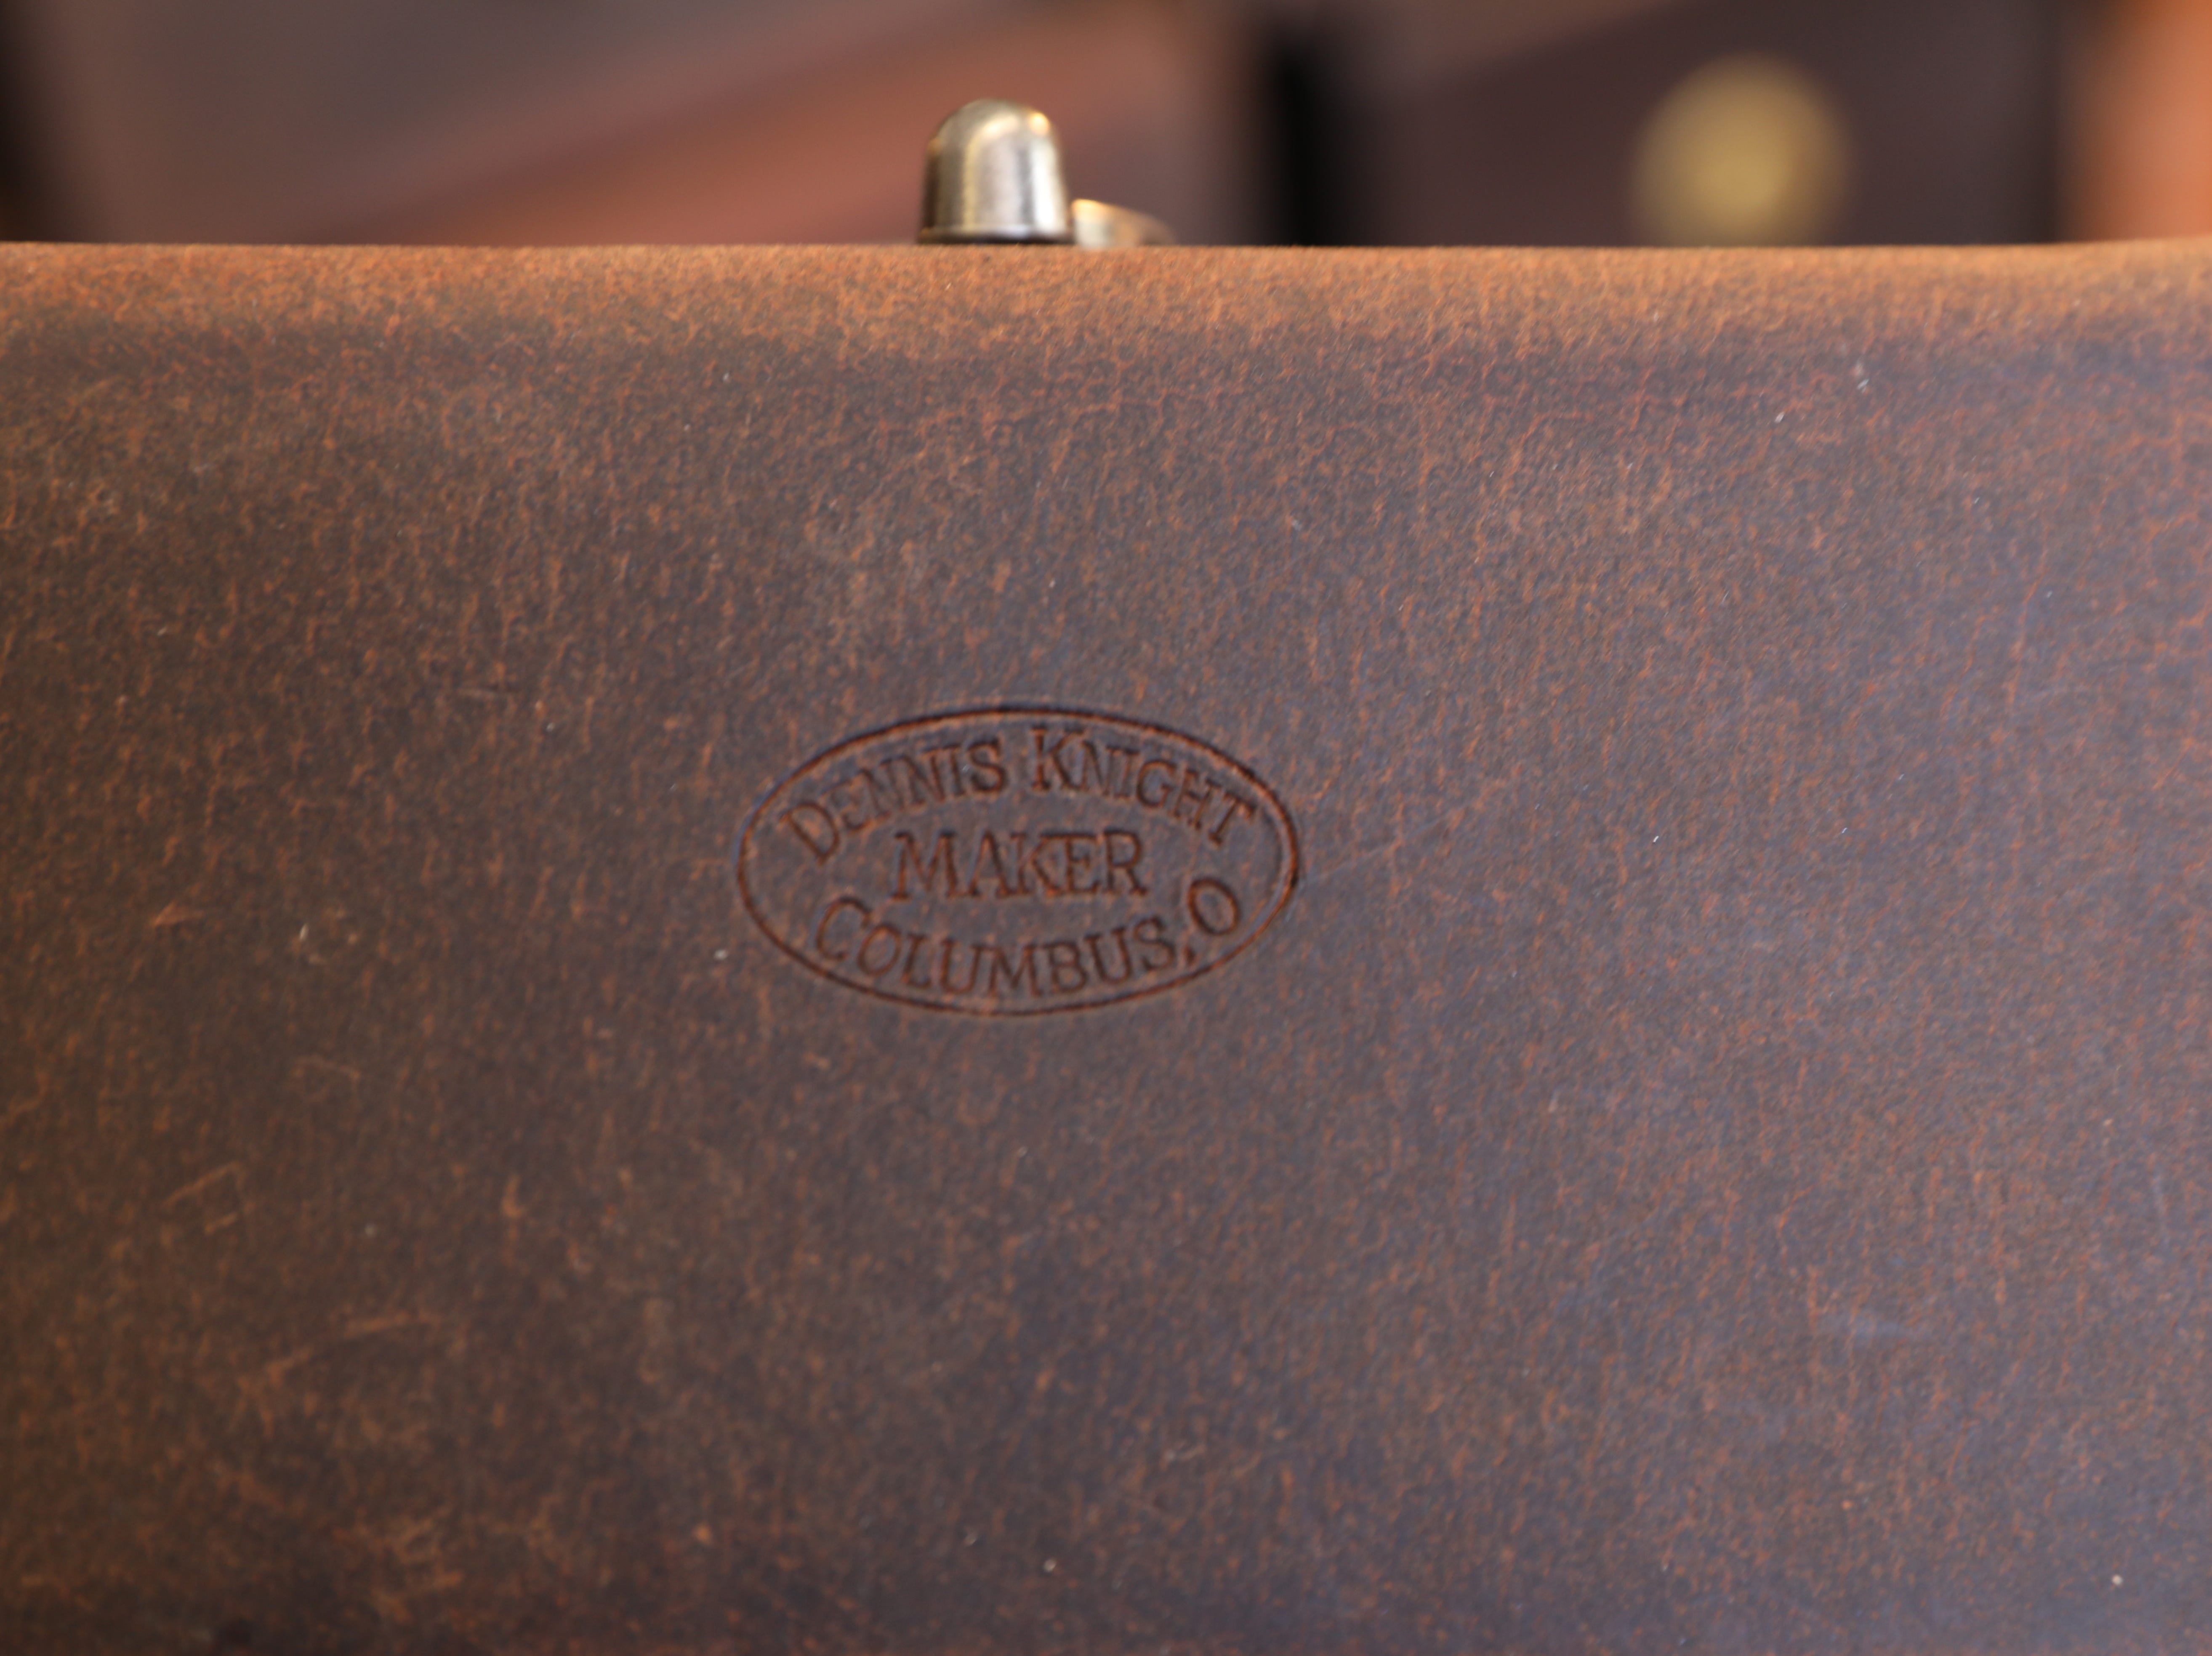 Dennis Knight's mark on a bag at River Ridge Leather Company in Roscoe Village.